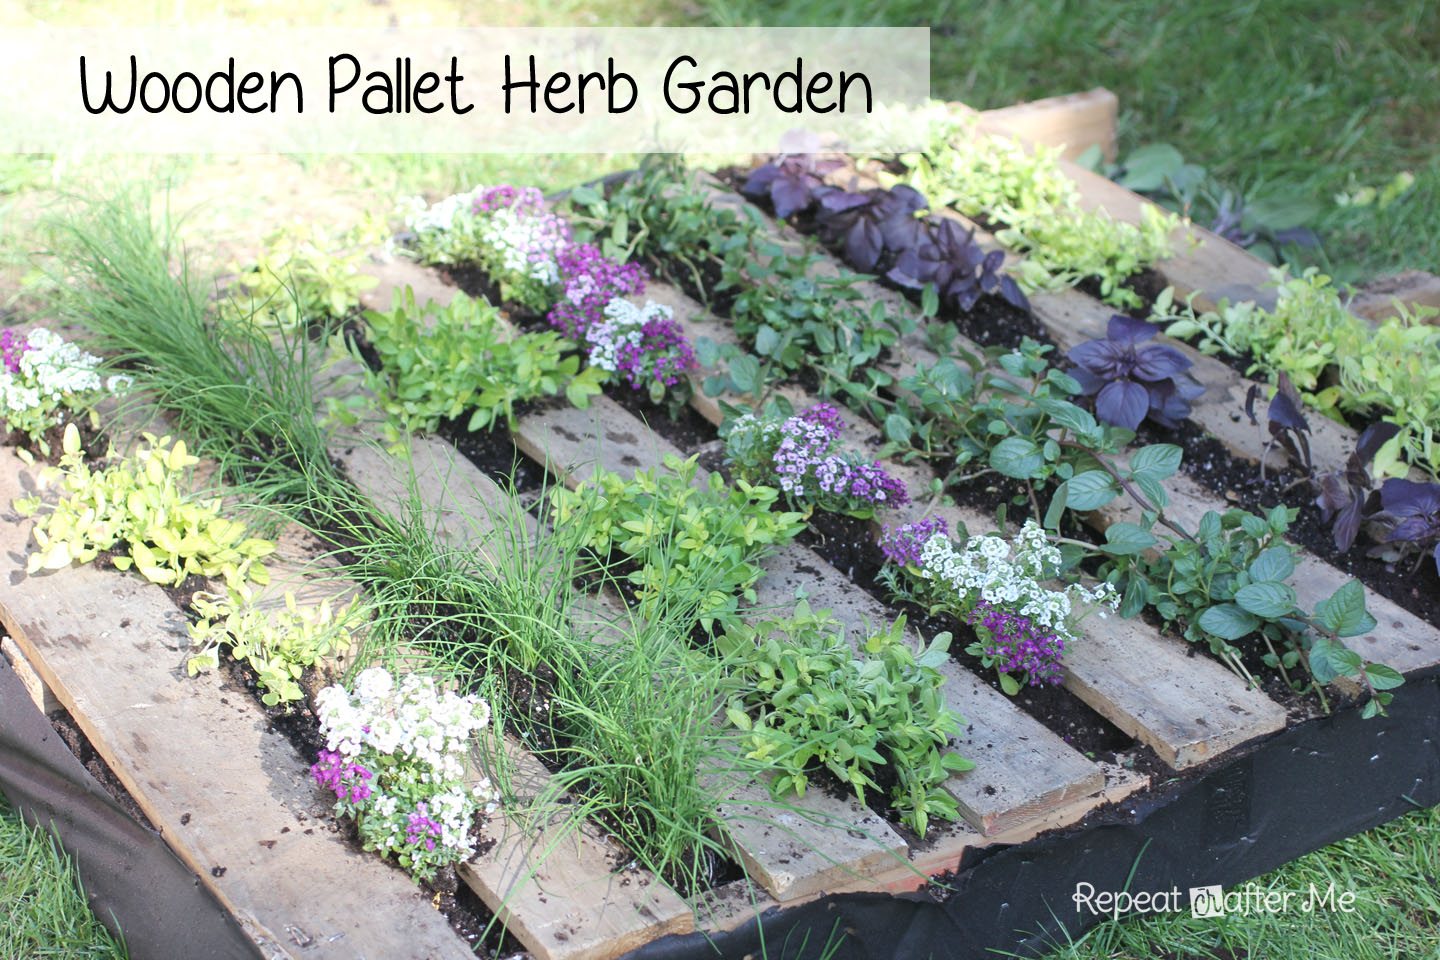 Herb Garden Layout Ideas how to make an herbal knot garden 40 Small Garden Ideas Small Garden Designs